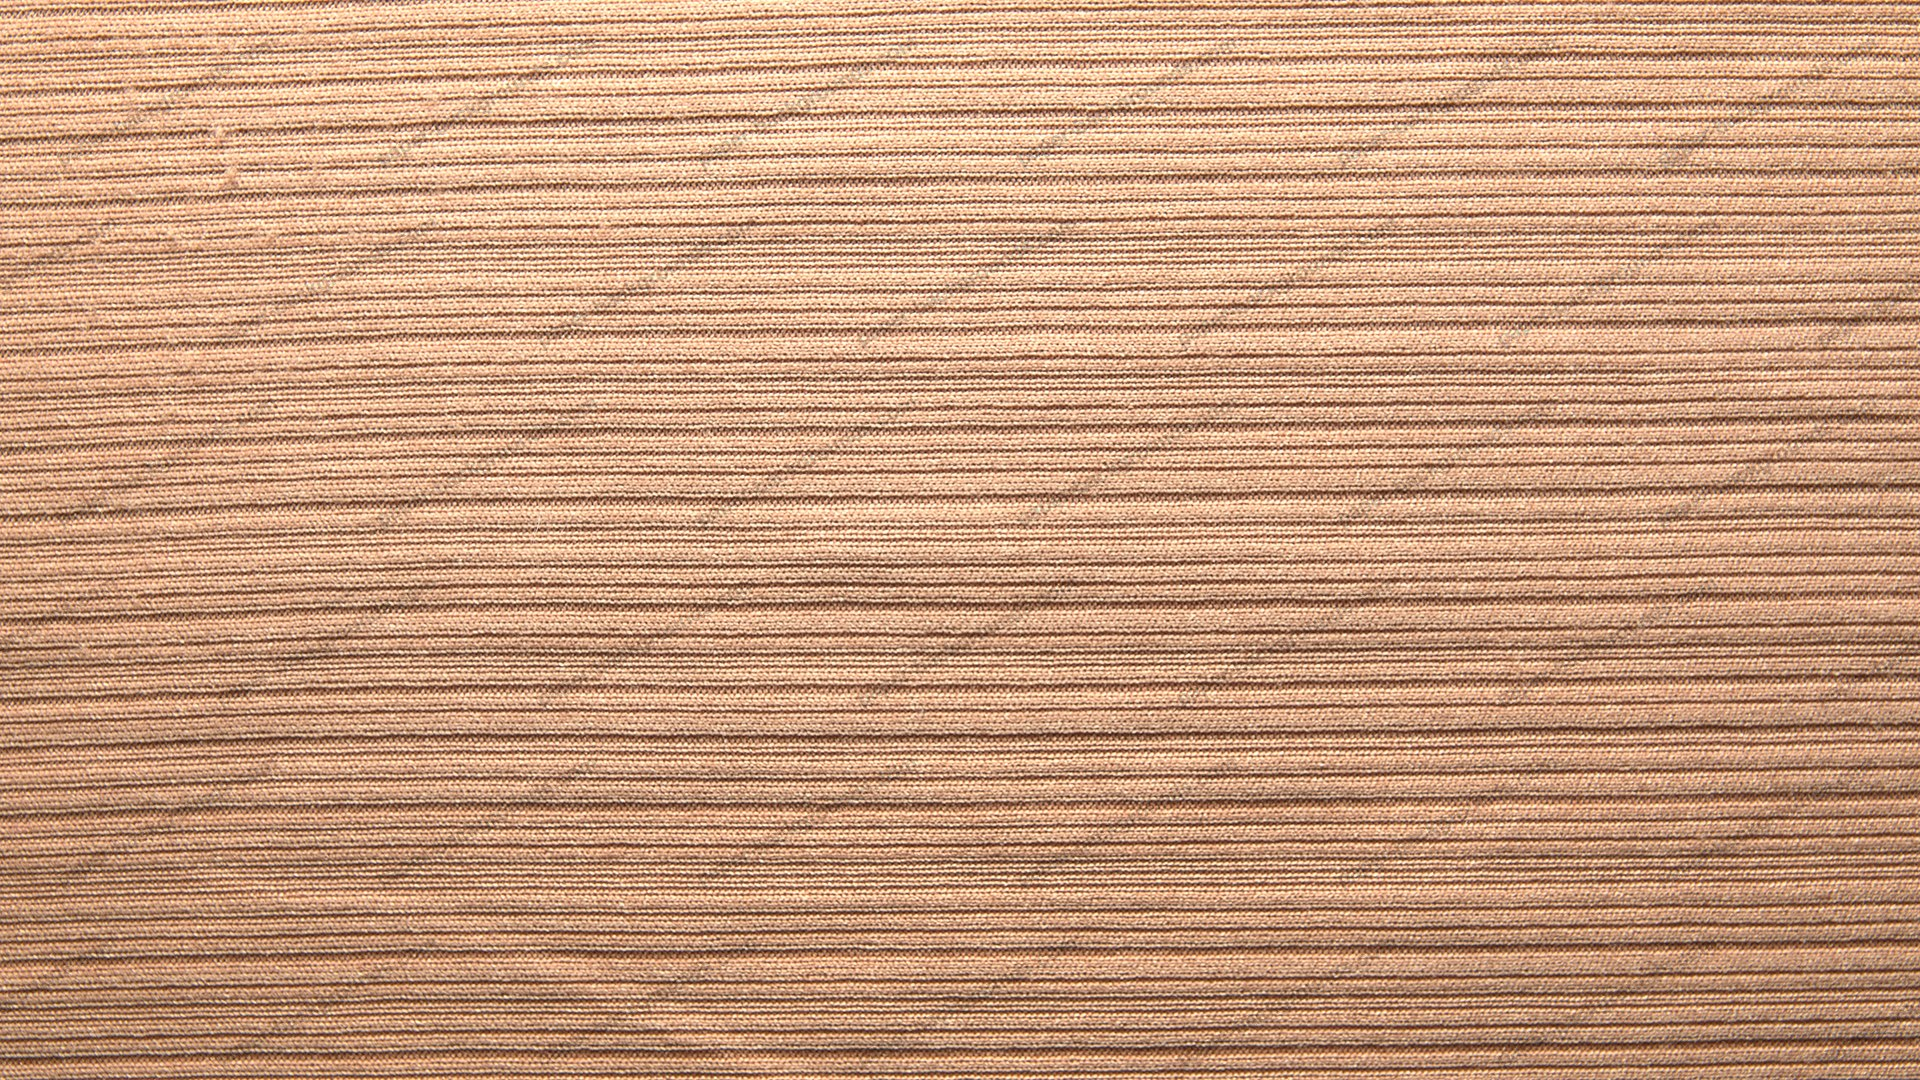 Beige Vintage Lined Fabric HD 1920 x 1080p